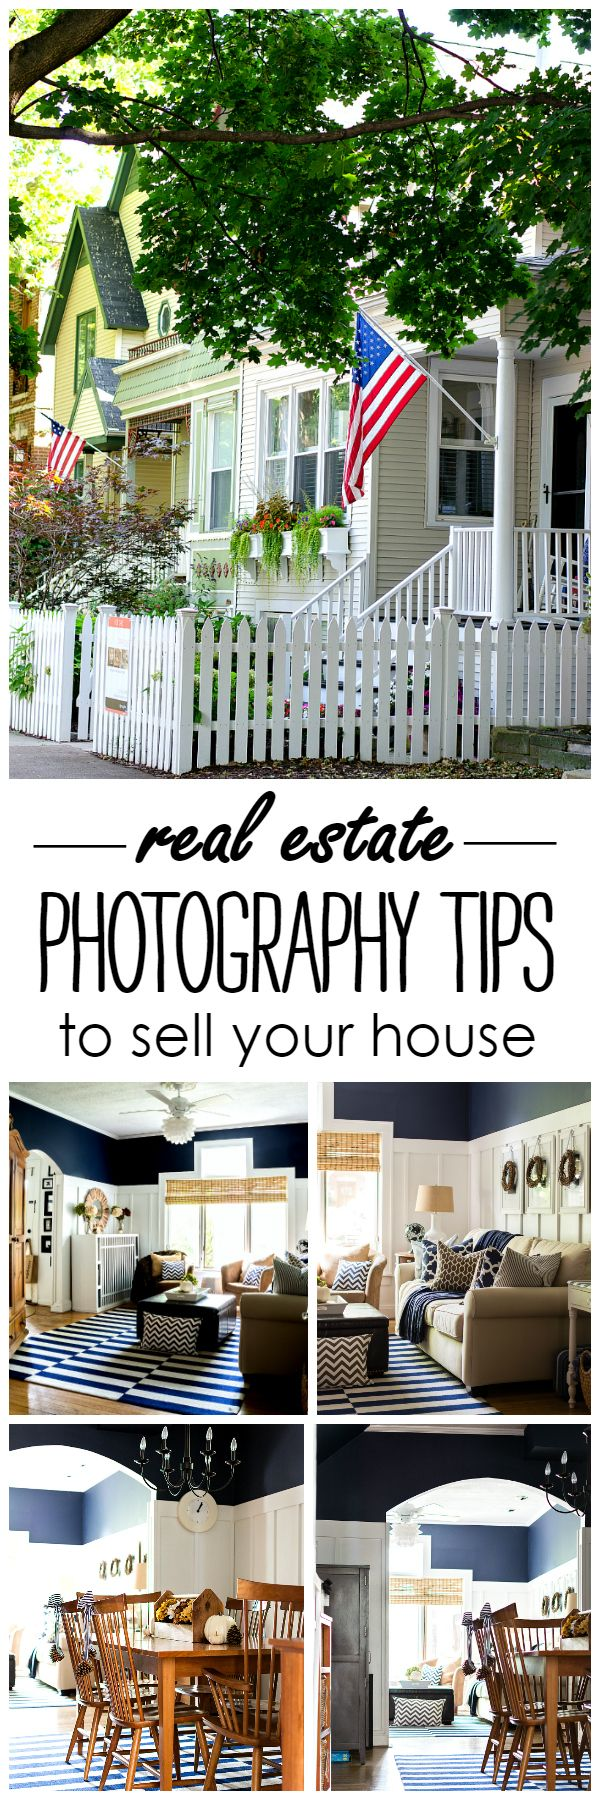 Photography Tips for your for sale by owner (FSBO) real estate listing; quick and easy tips on how to make your real estate listing stand out